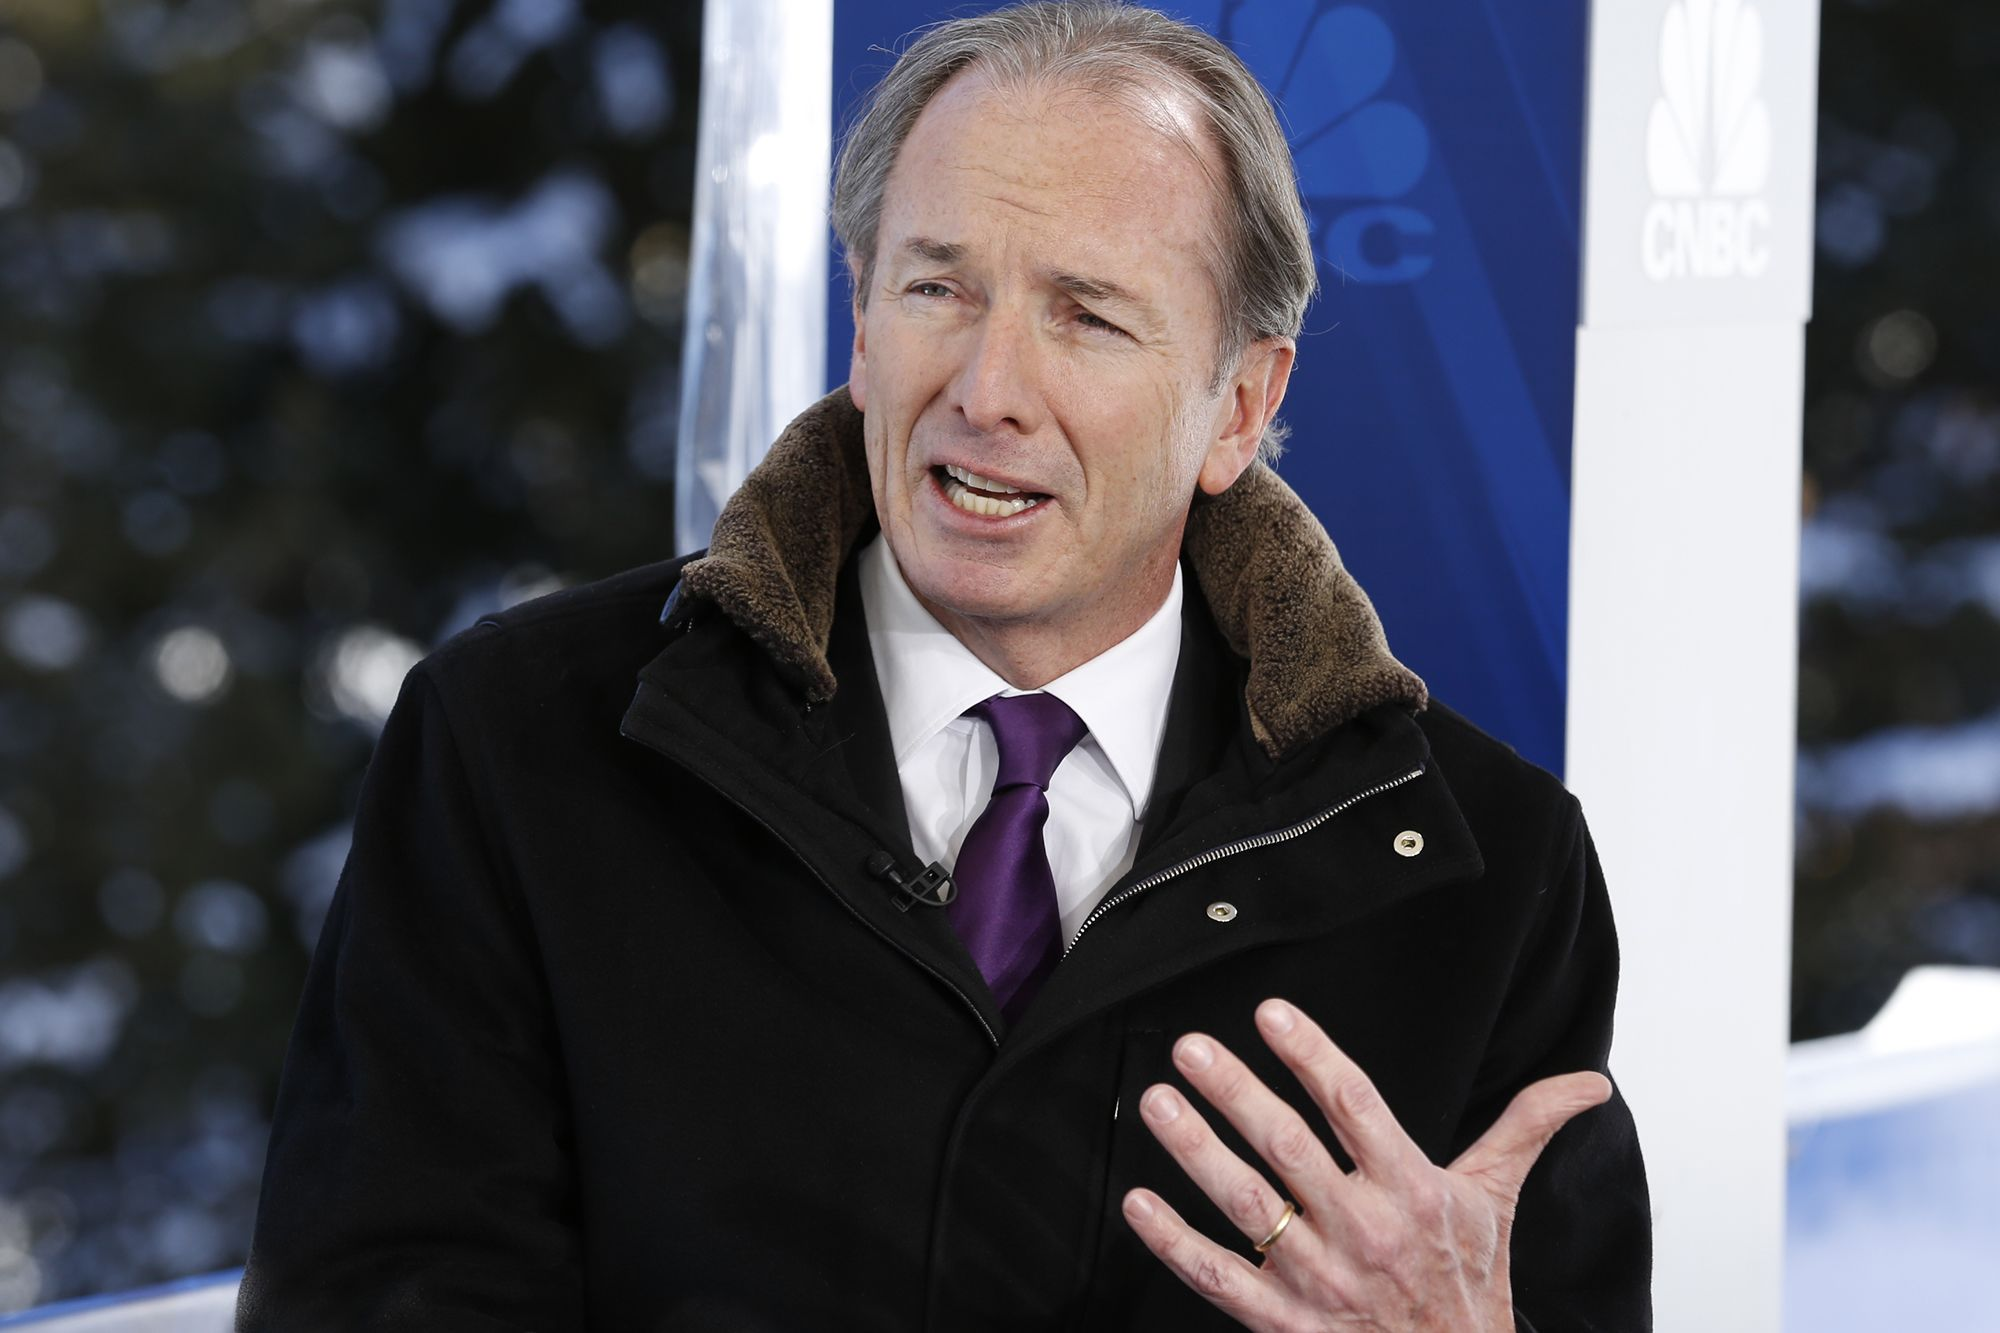 Watch CNBC's full interview with Morgan Stanley CEO James Gorman – Davos 2019